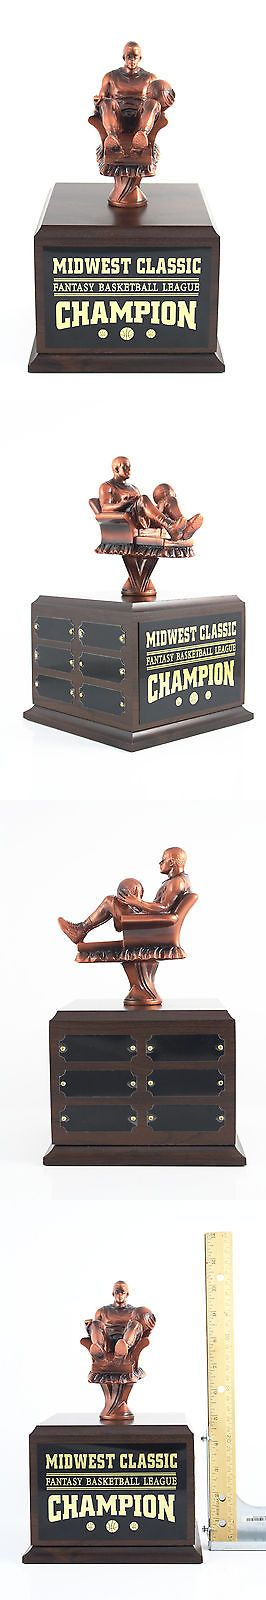 Other Basketball 2023: Fantasy Basketball Armchair 12 Year Trophy!! Free Engraving!! Ships In 1 Day!! -> BUY IT NOW ONLY: $38.49 on eBay!